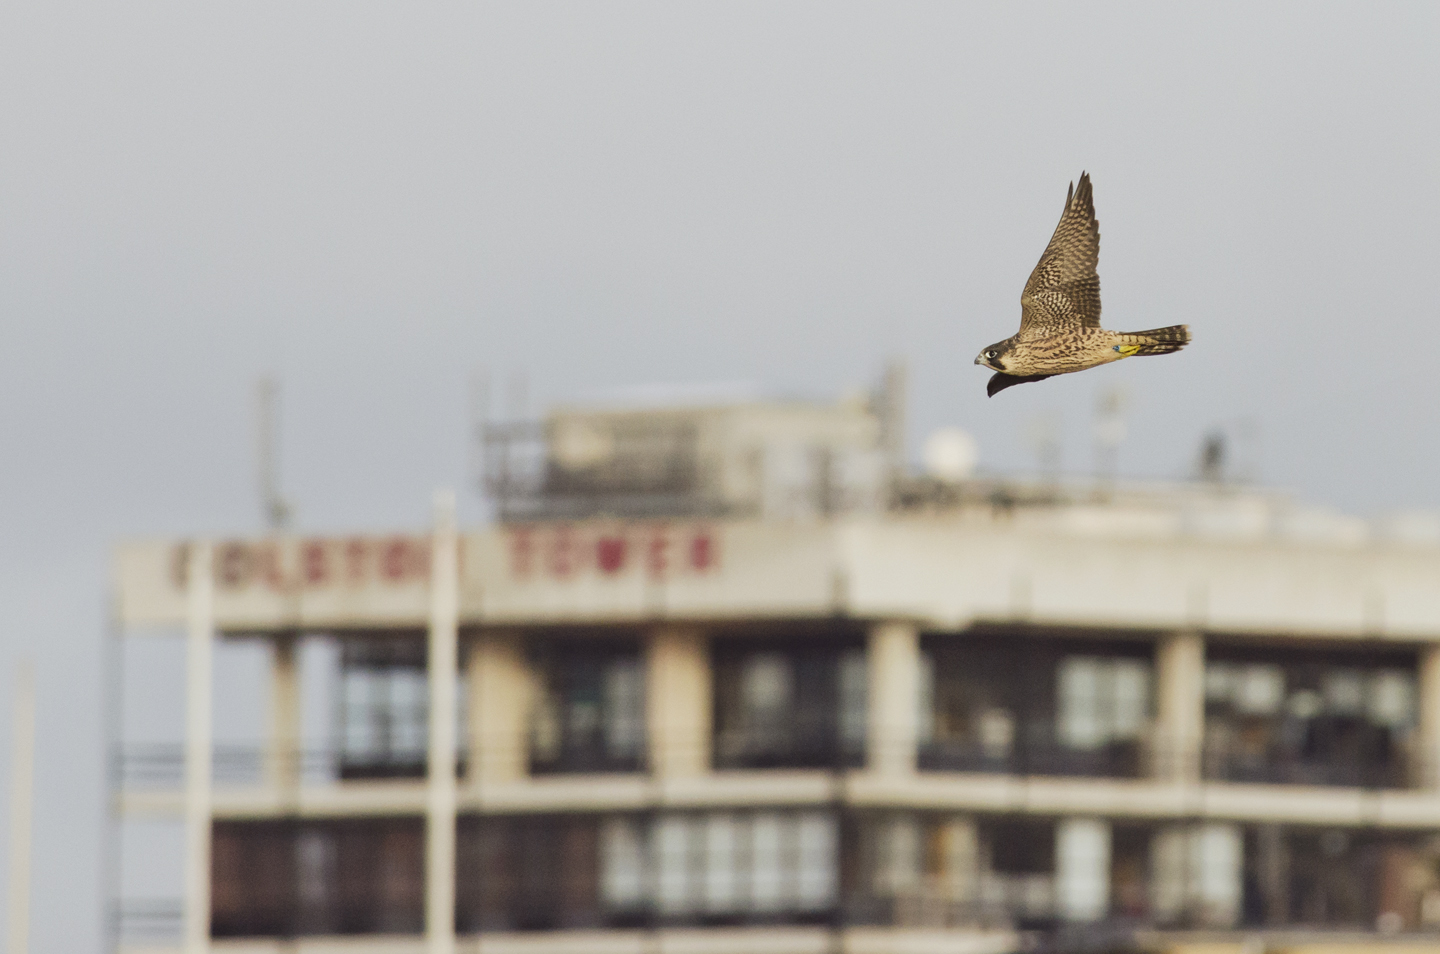 Their first flights are often short and less than graceful, but before long they are soaring above the city skyline